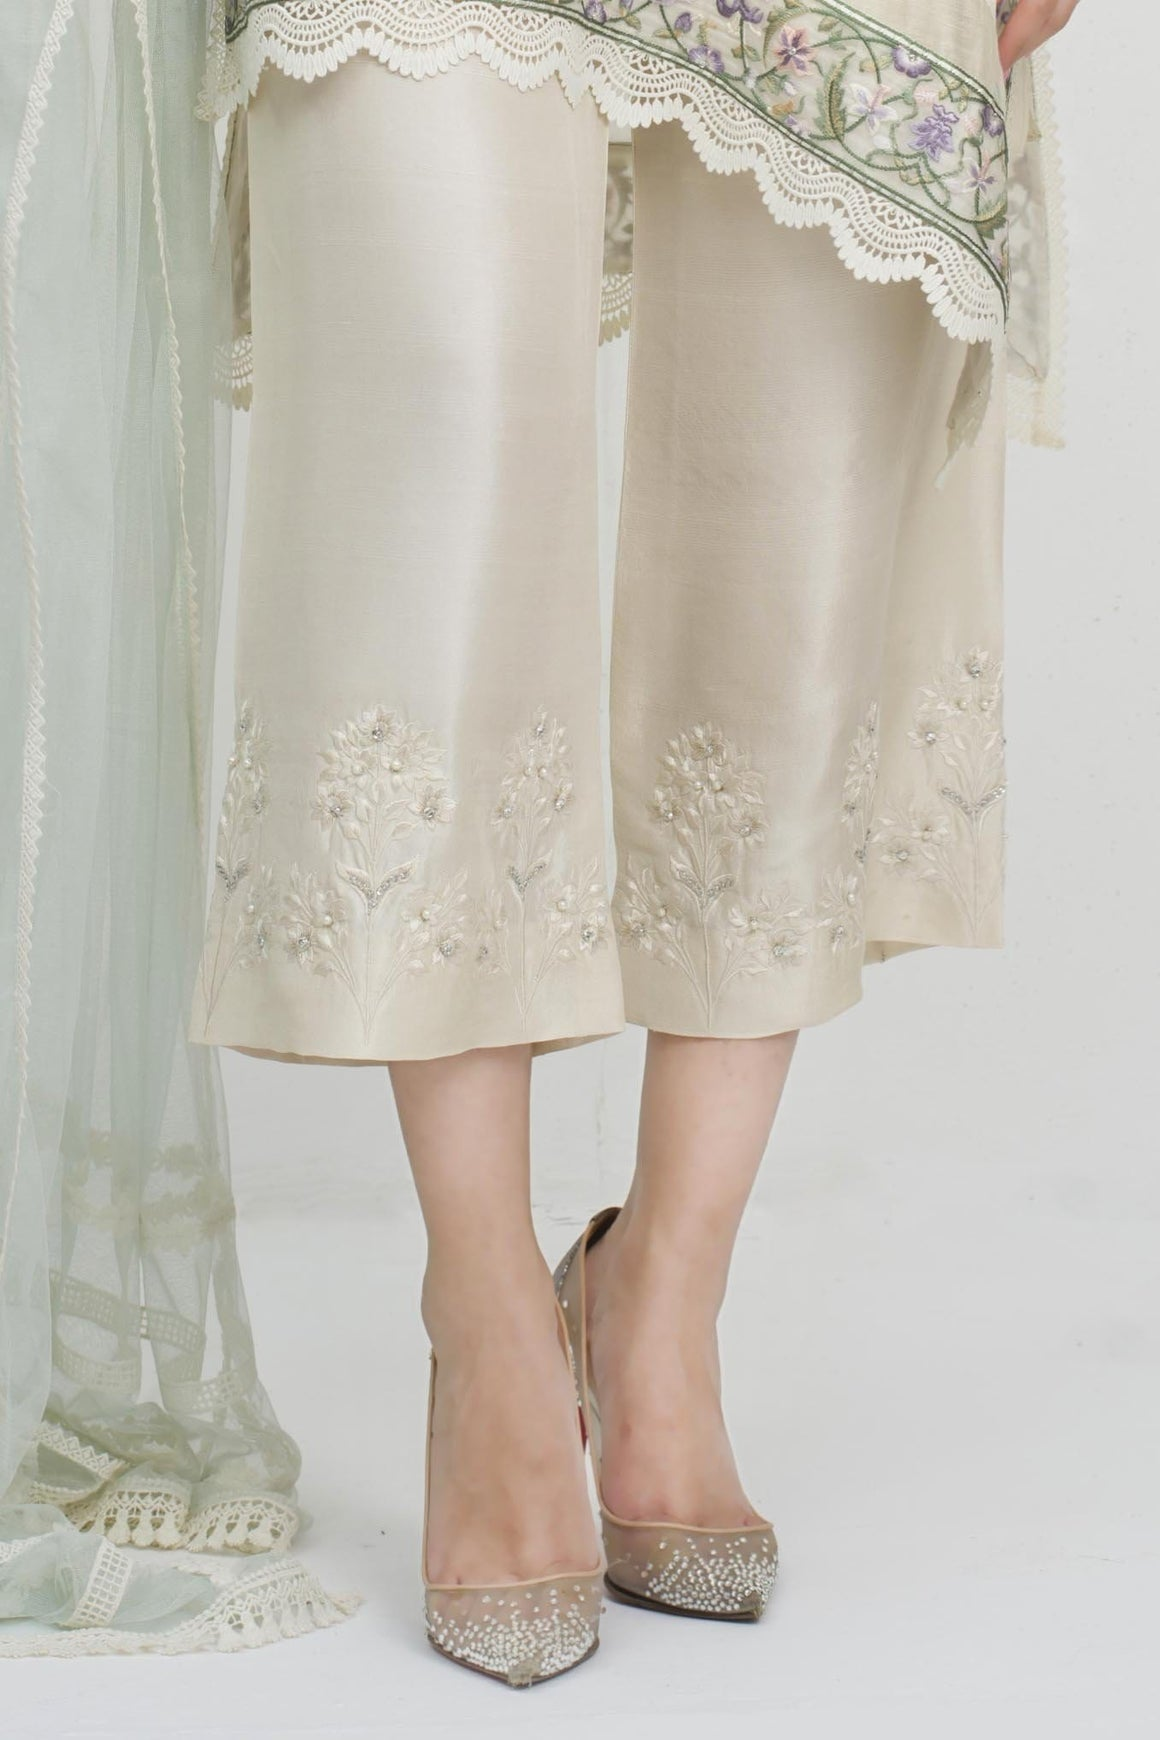 Sania Maskatiya - Floral Embroidered Raw Silk Ezar